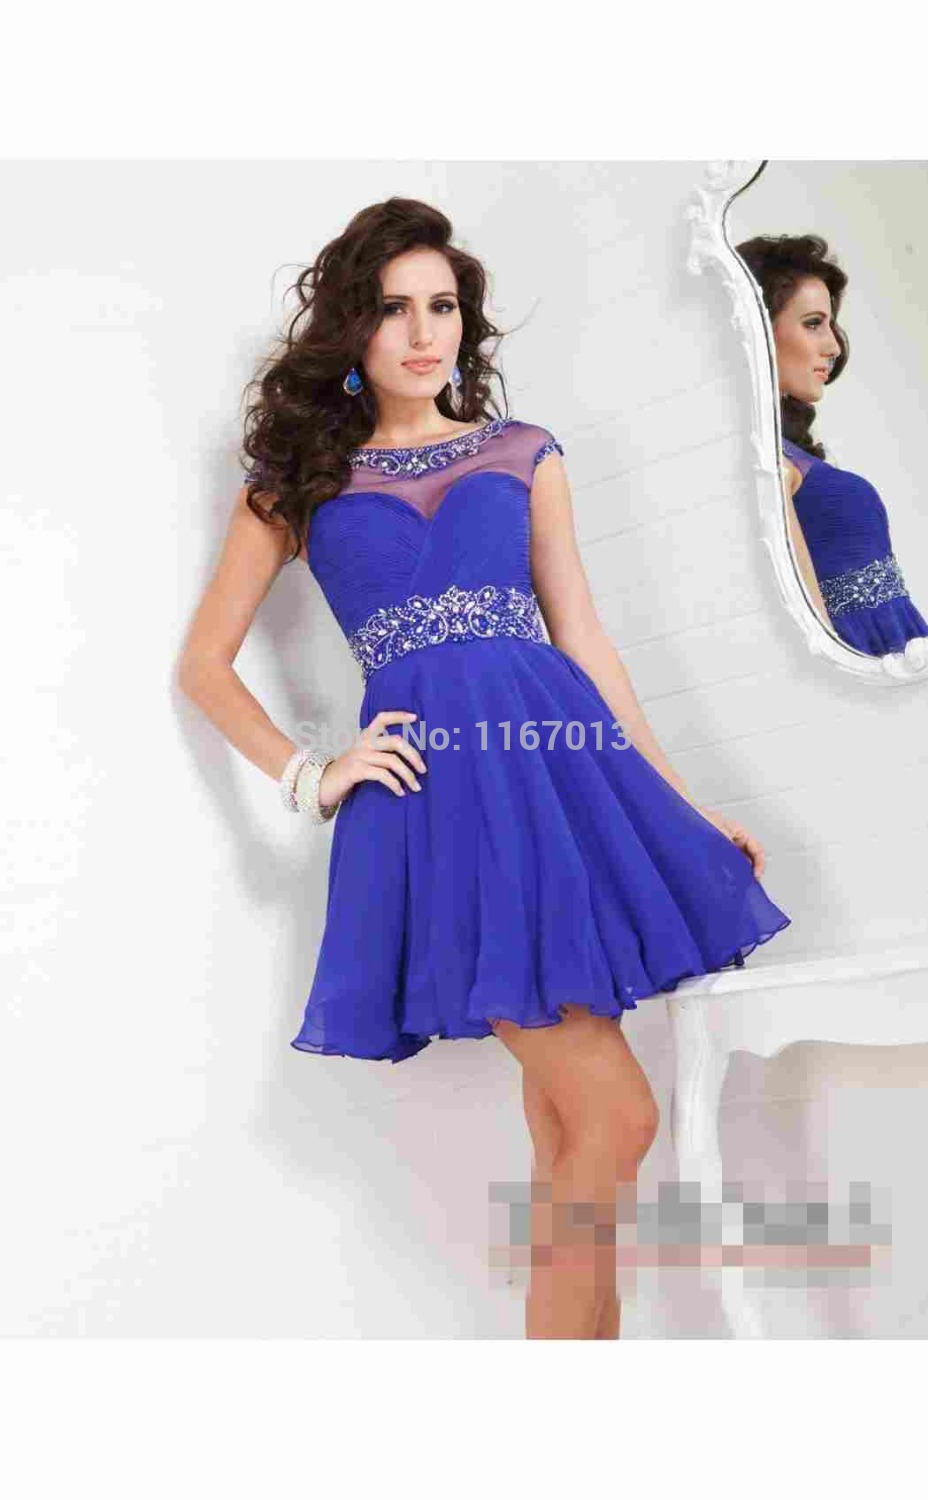 Places To Buy Prom Dresses - Dress Xy